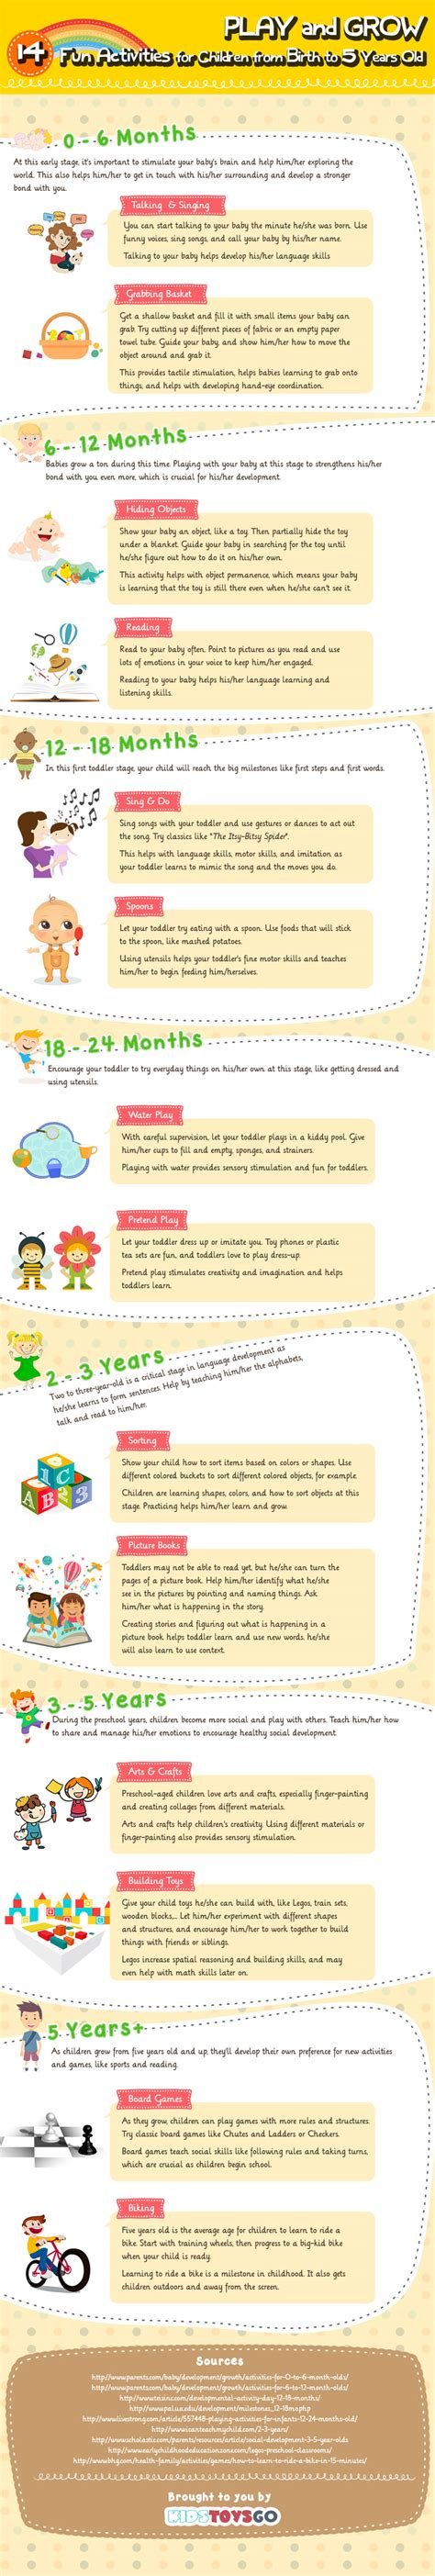 infographic 14 fun activities for children from birth to